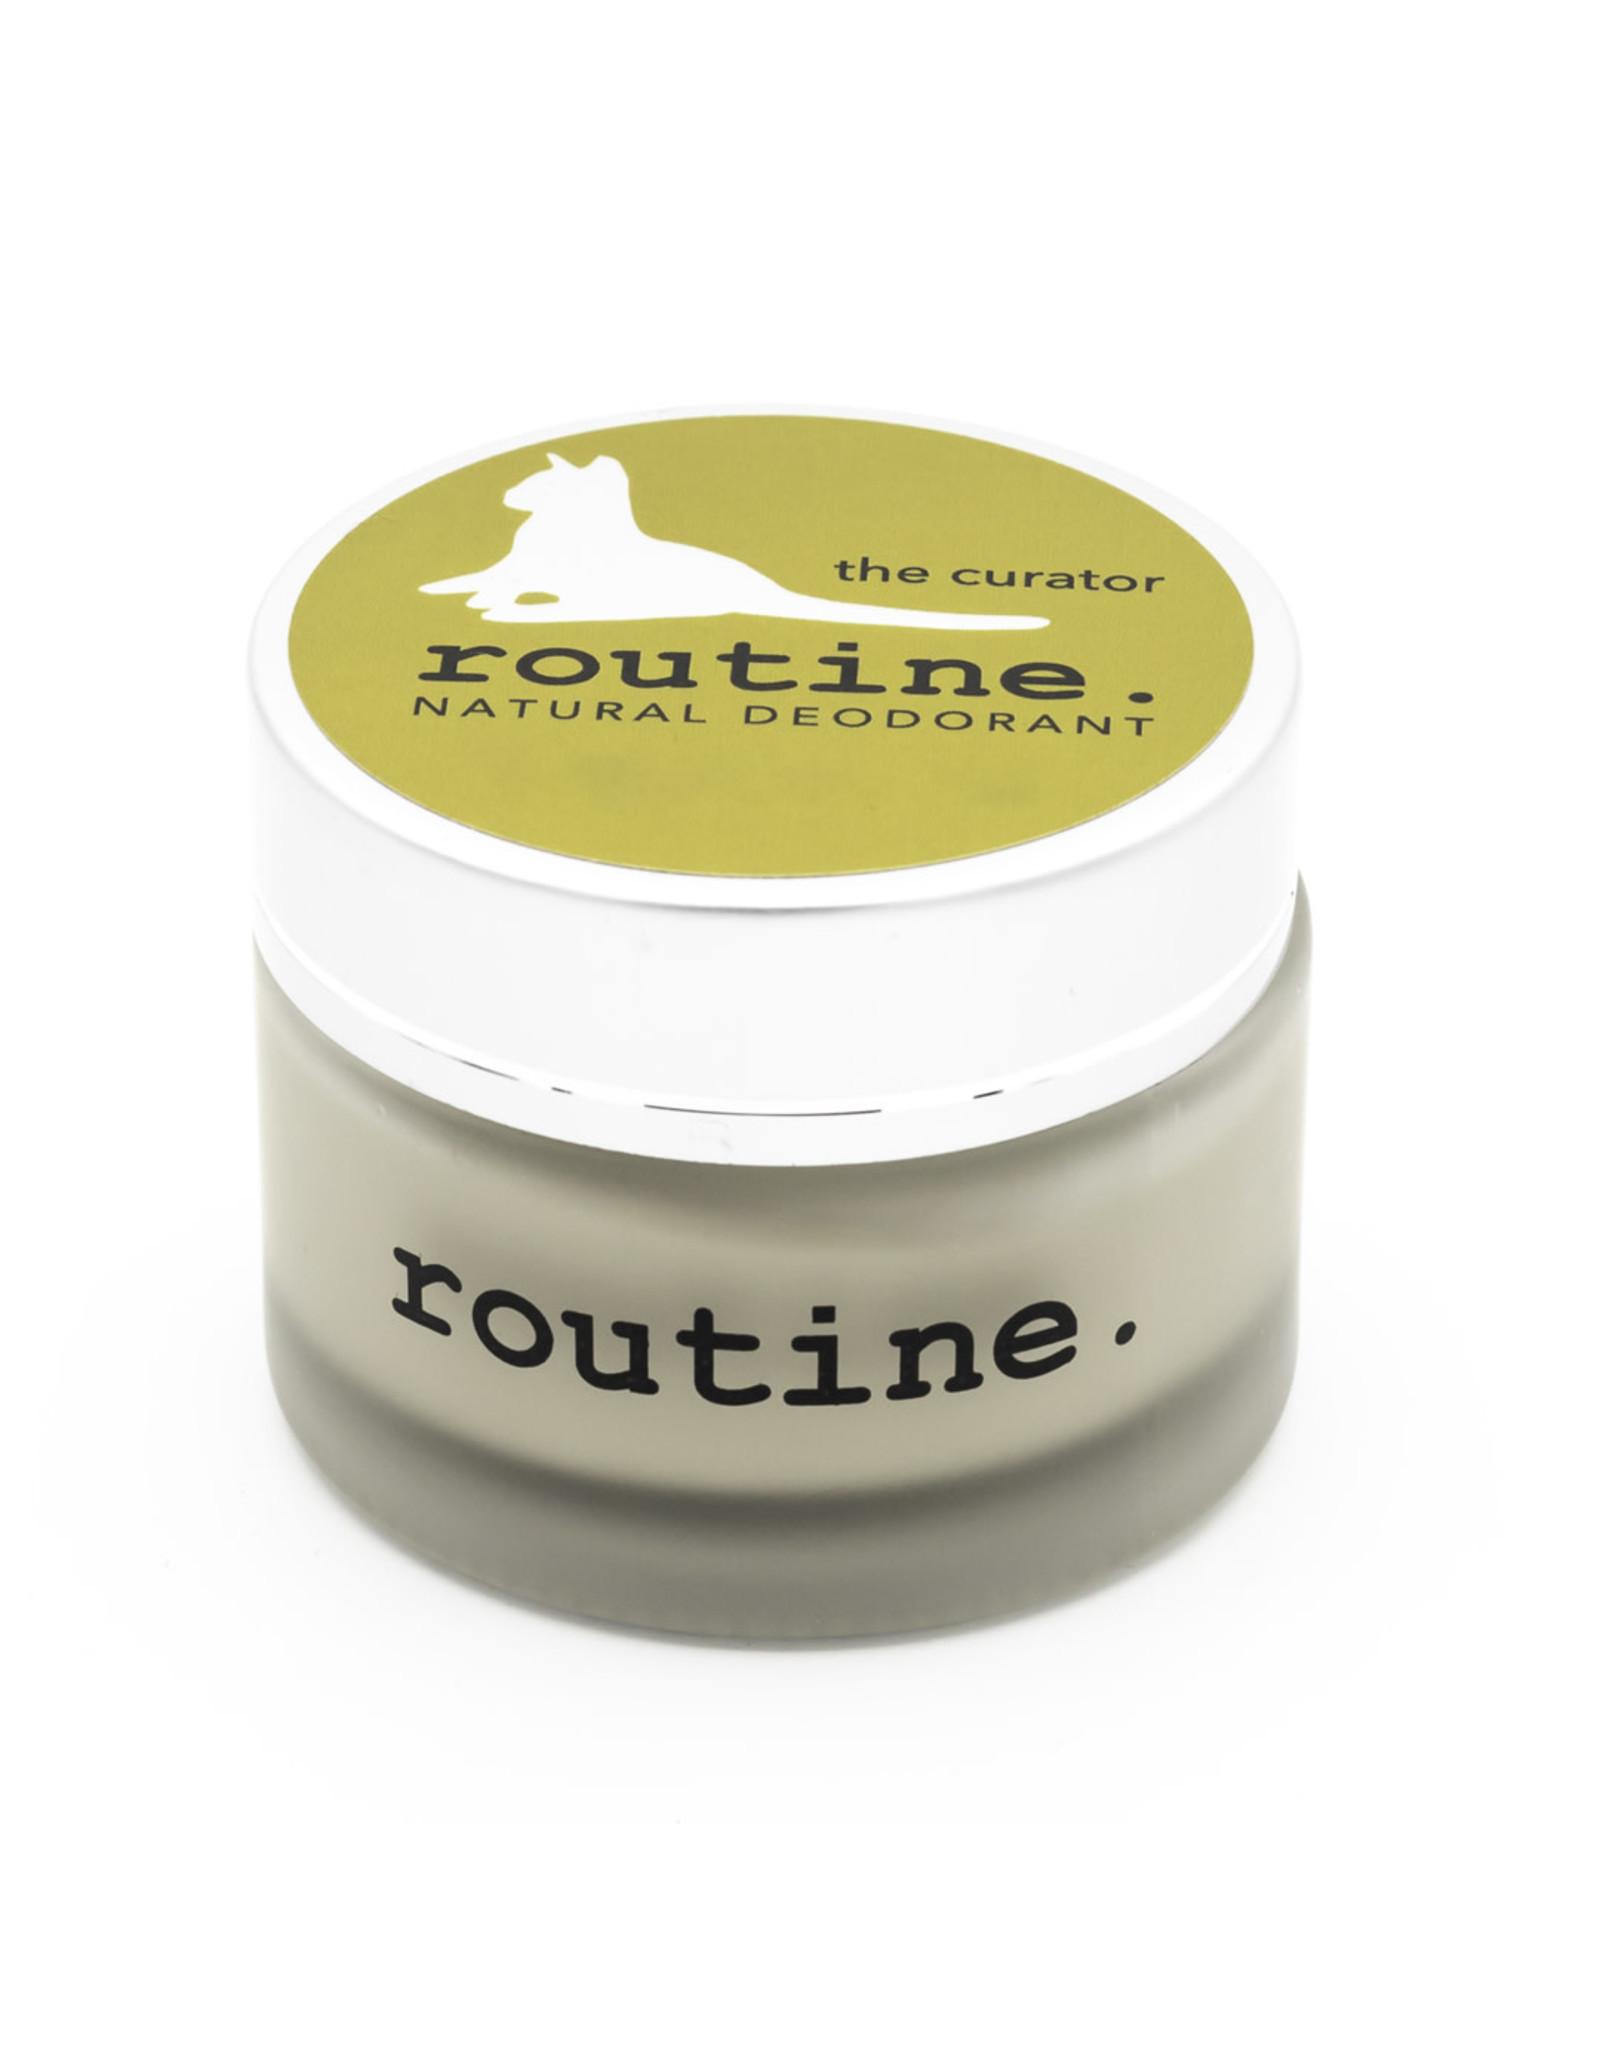 Routine The Curator - Baking Soda Free